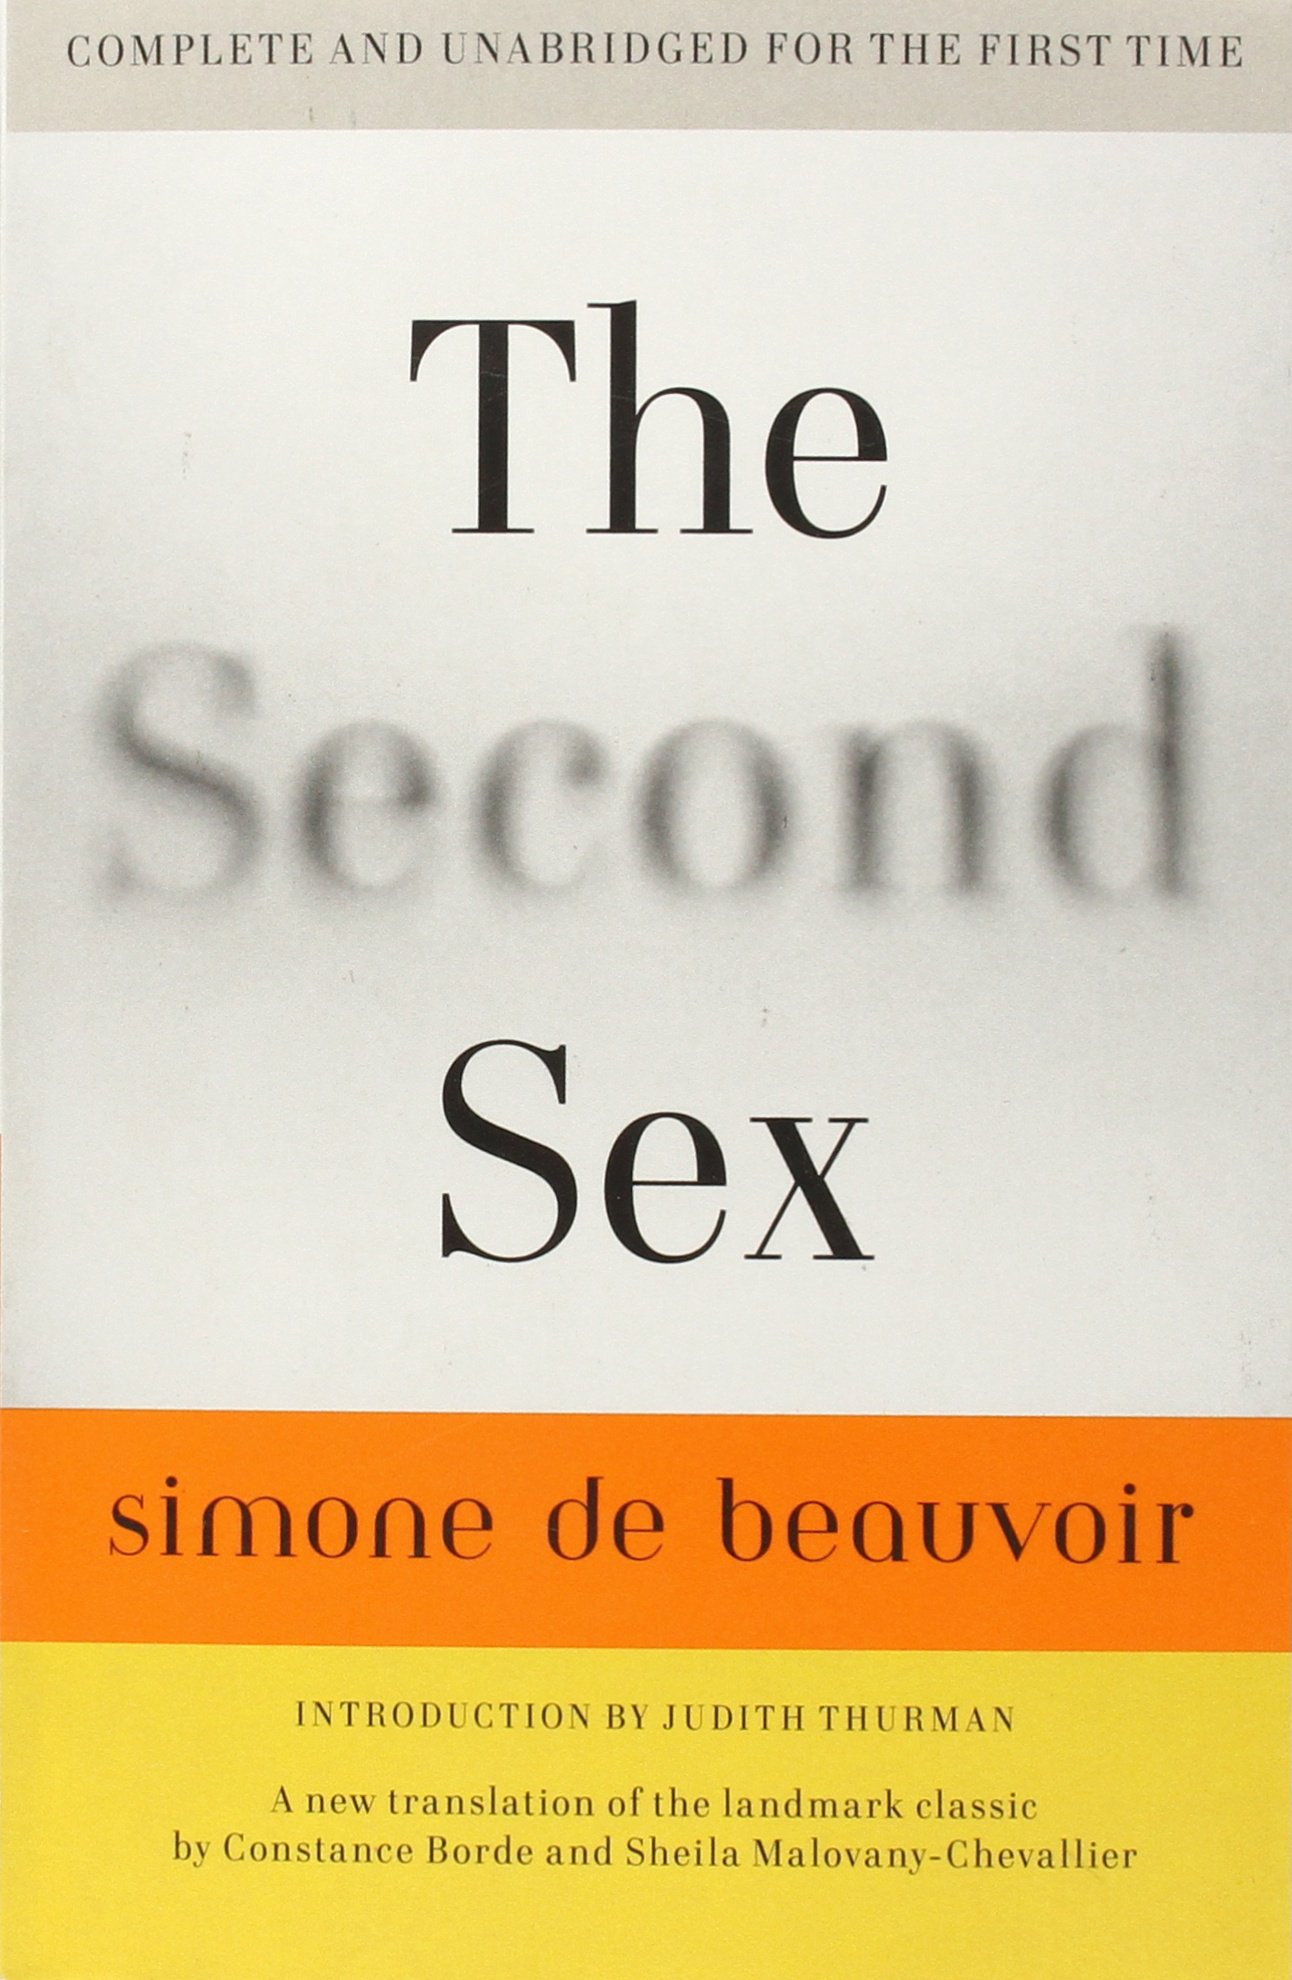 The Second Sex ISBN-13 9780307277787